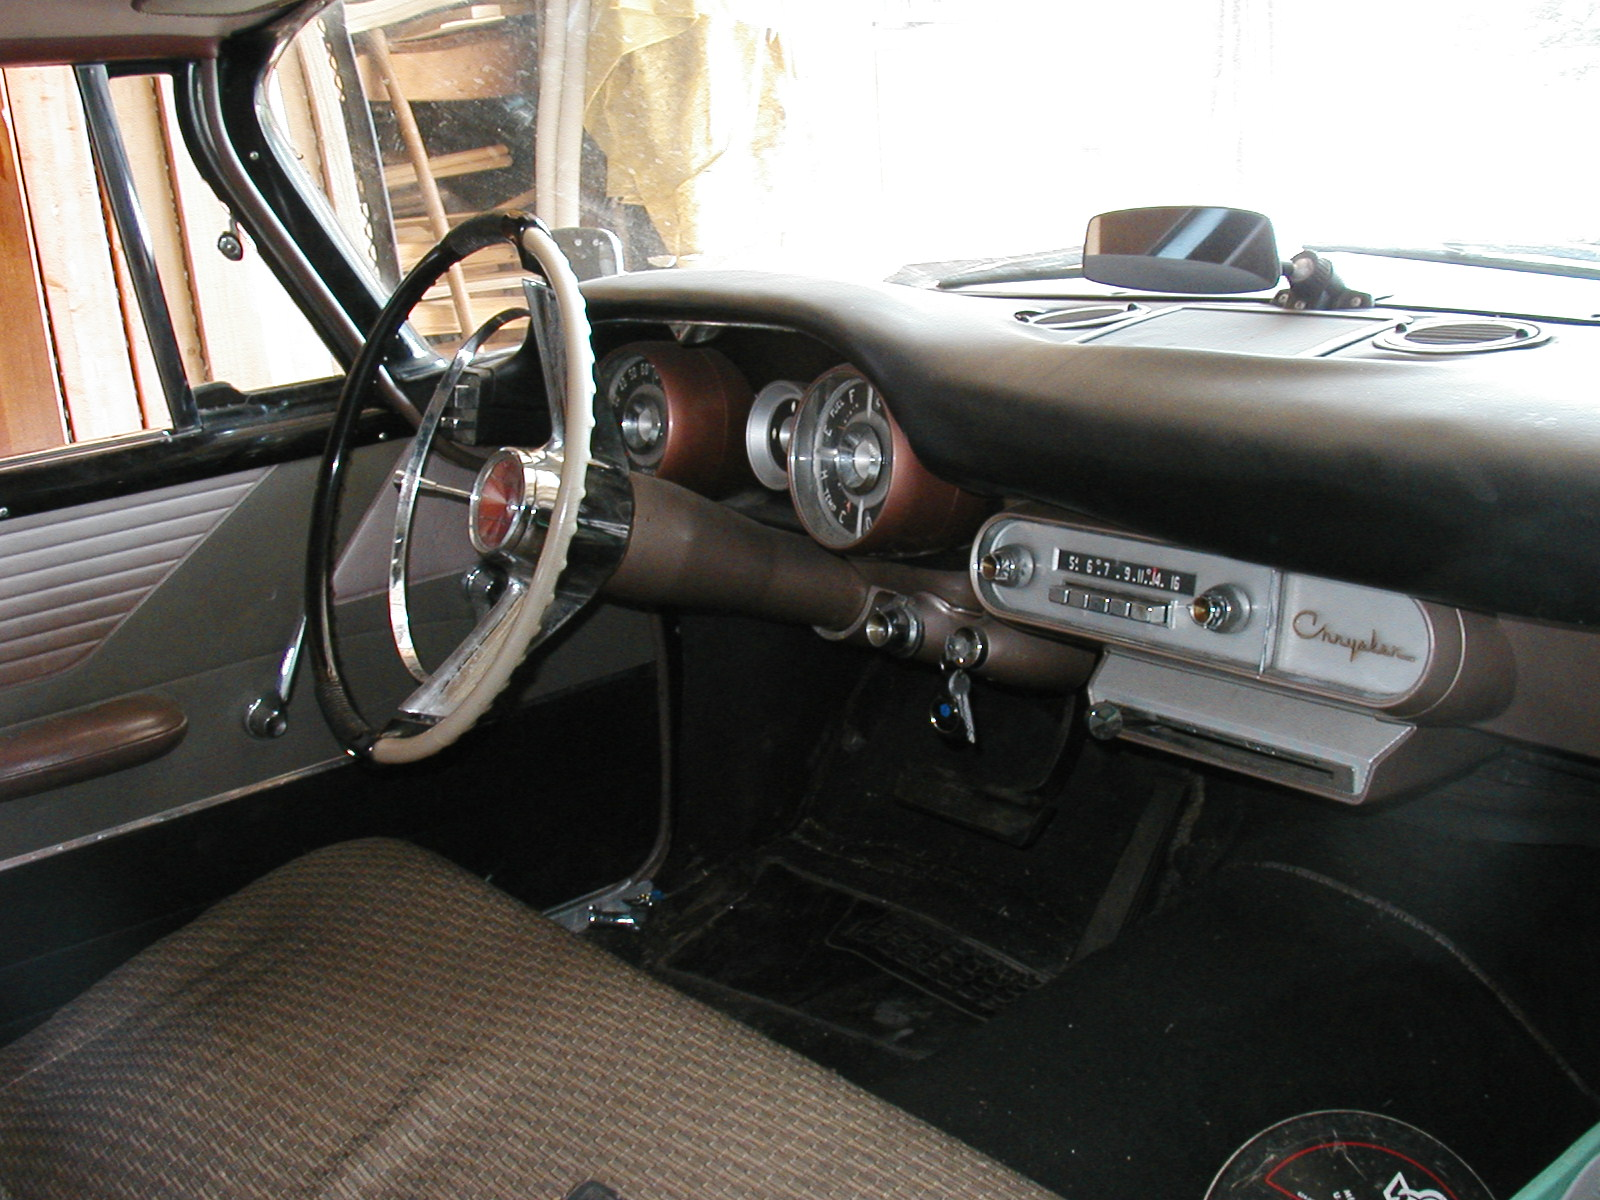 1957 Chrysler Windsor Dash